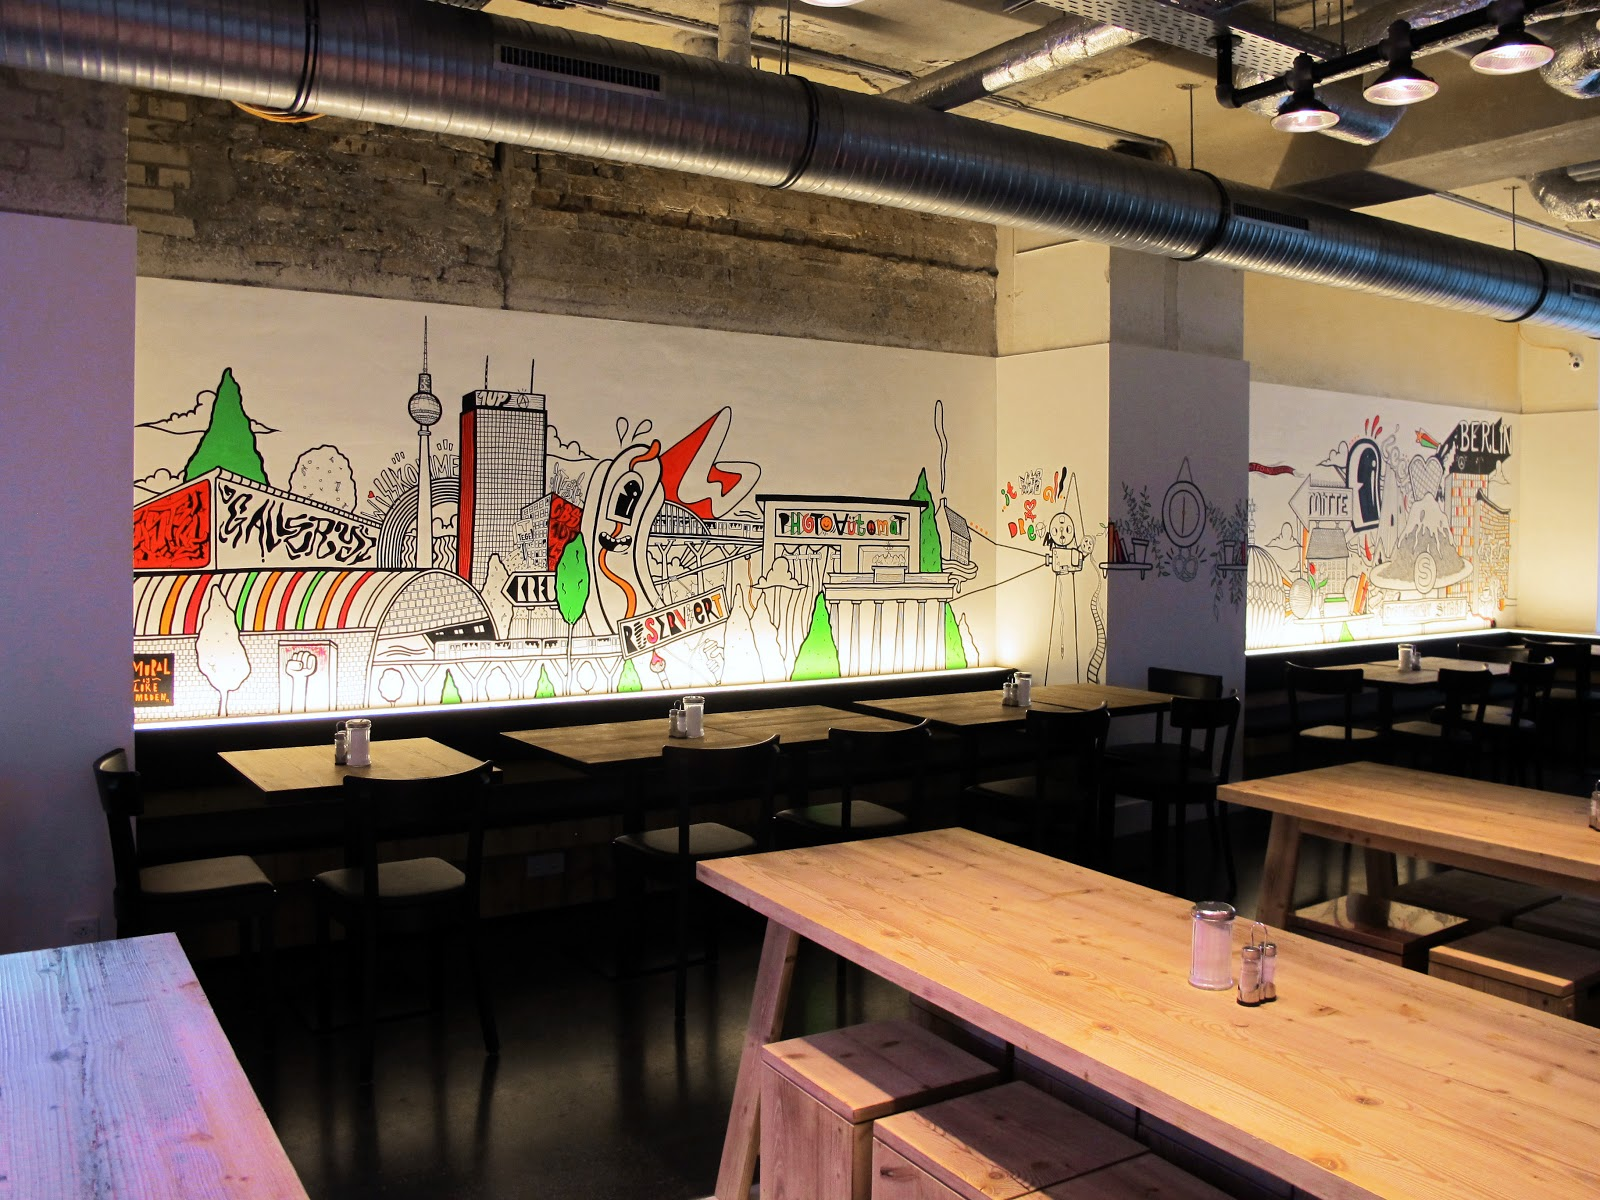 itsmelukeembden generator hostel berlin mitte mural. Black Bedroom Furniture Sets. Home Design Ideas